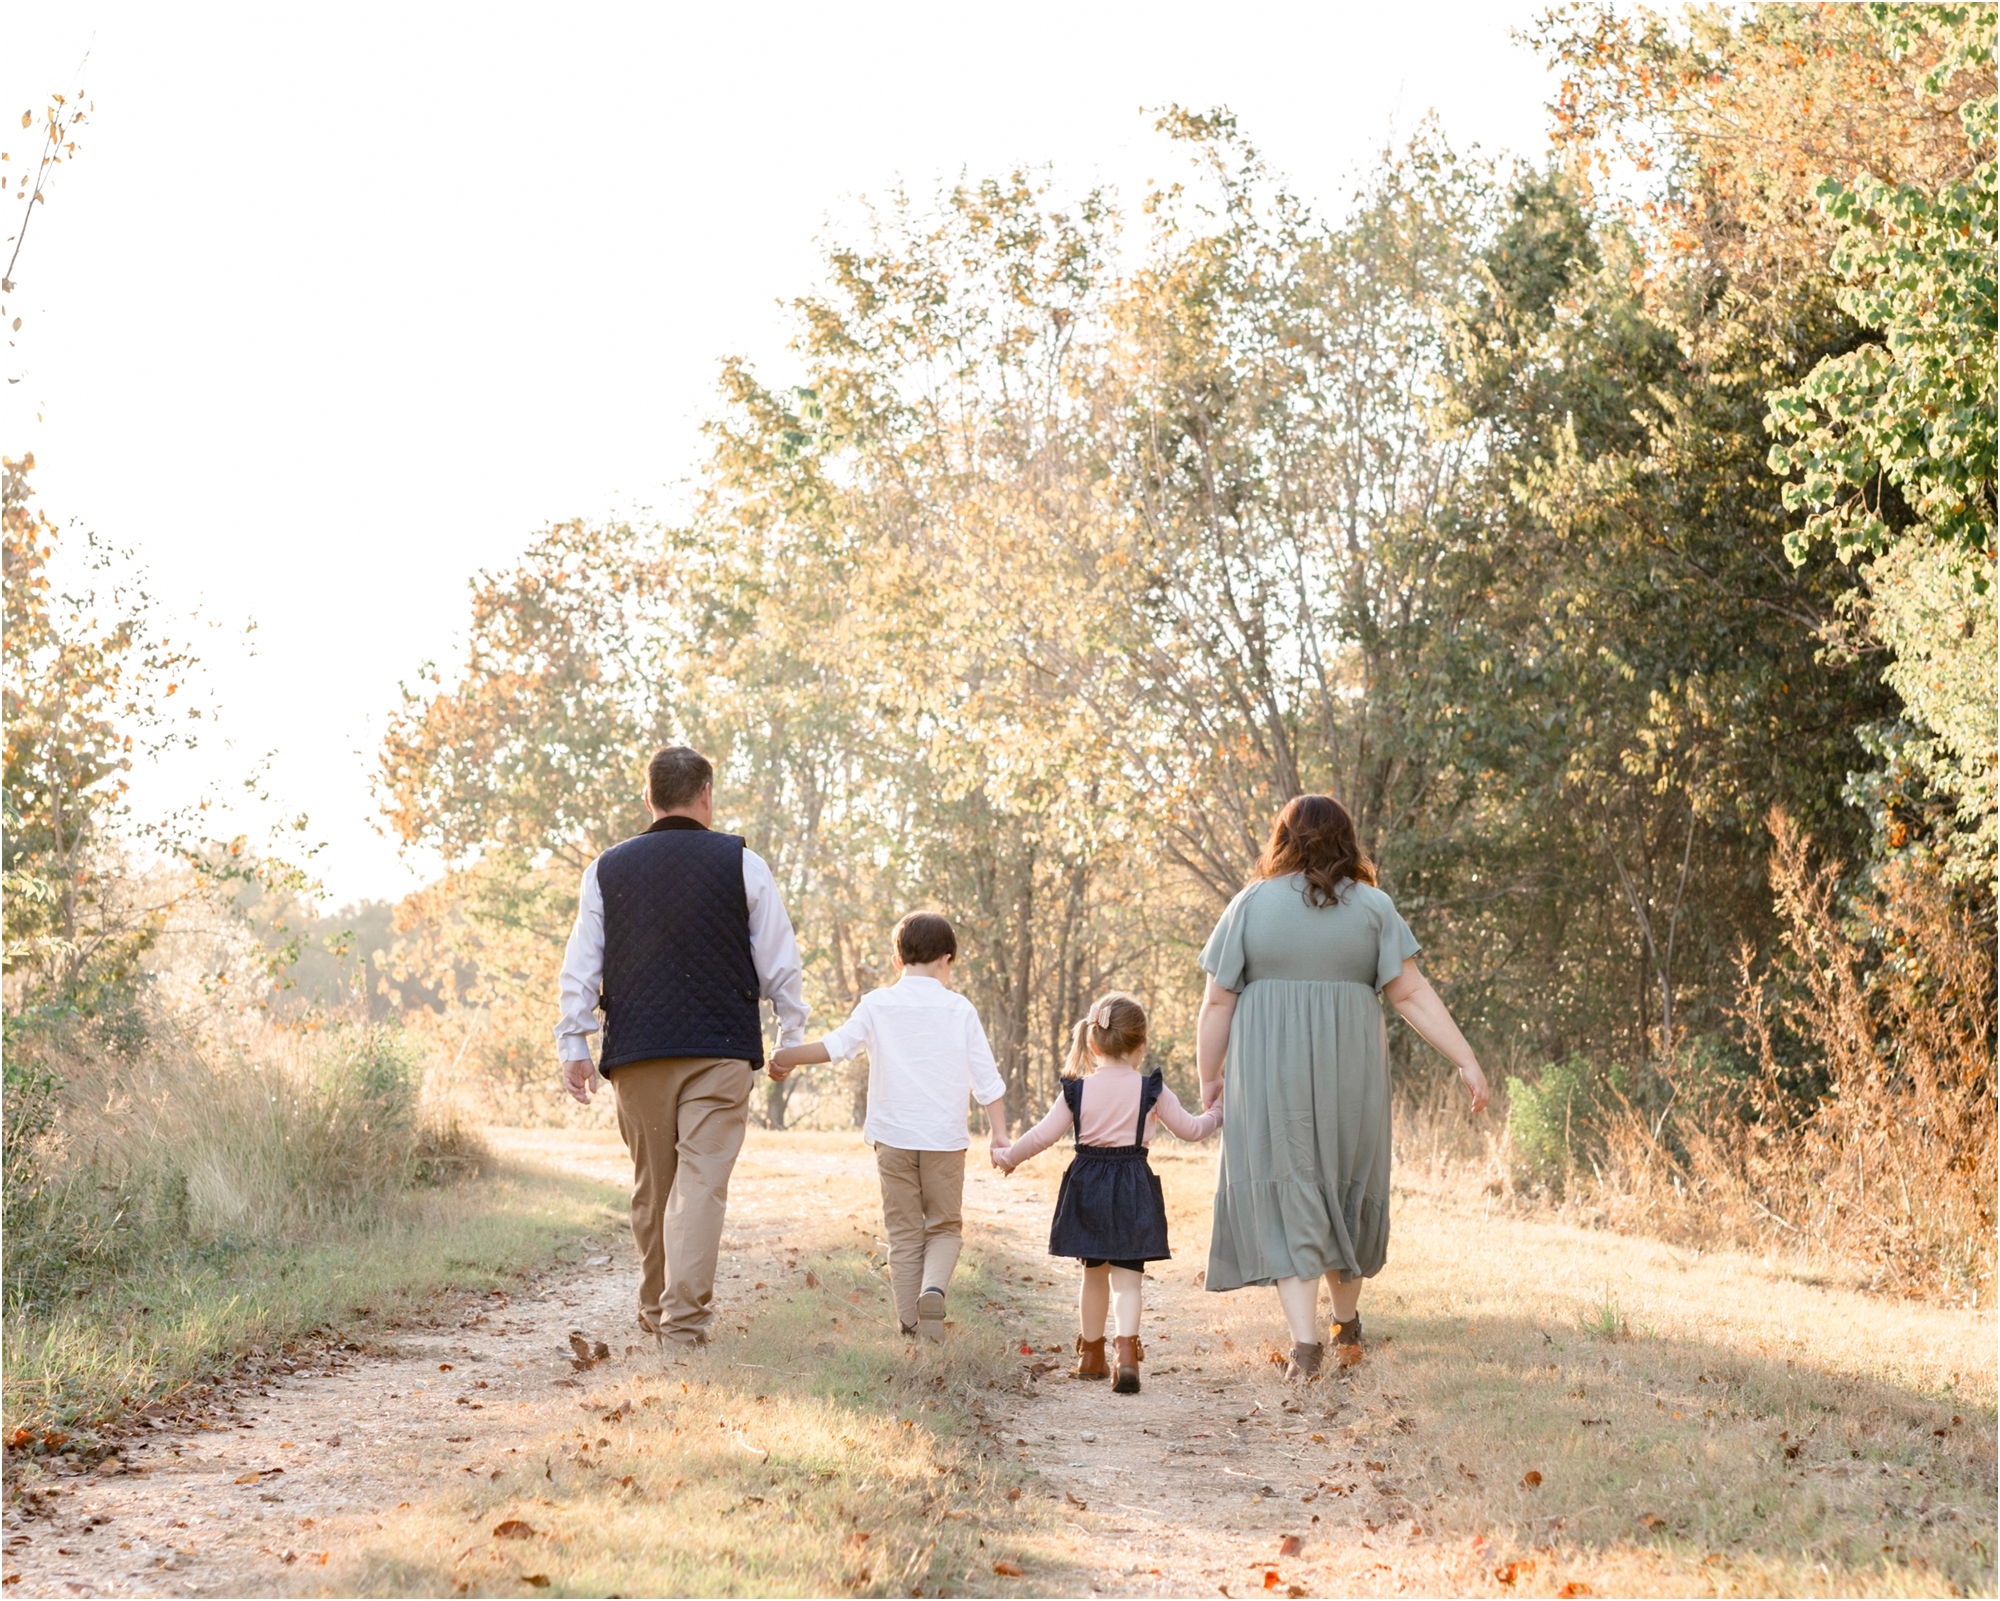 Family walking away during beautiful sunset park session. Photo by Lifetime of Clicks Photography.